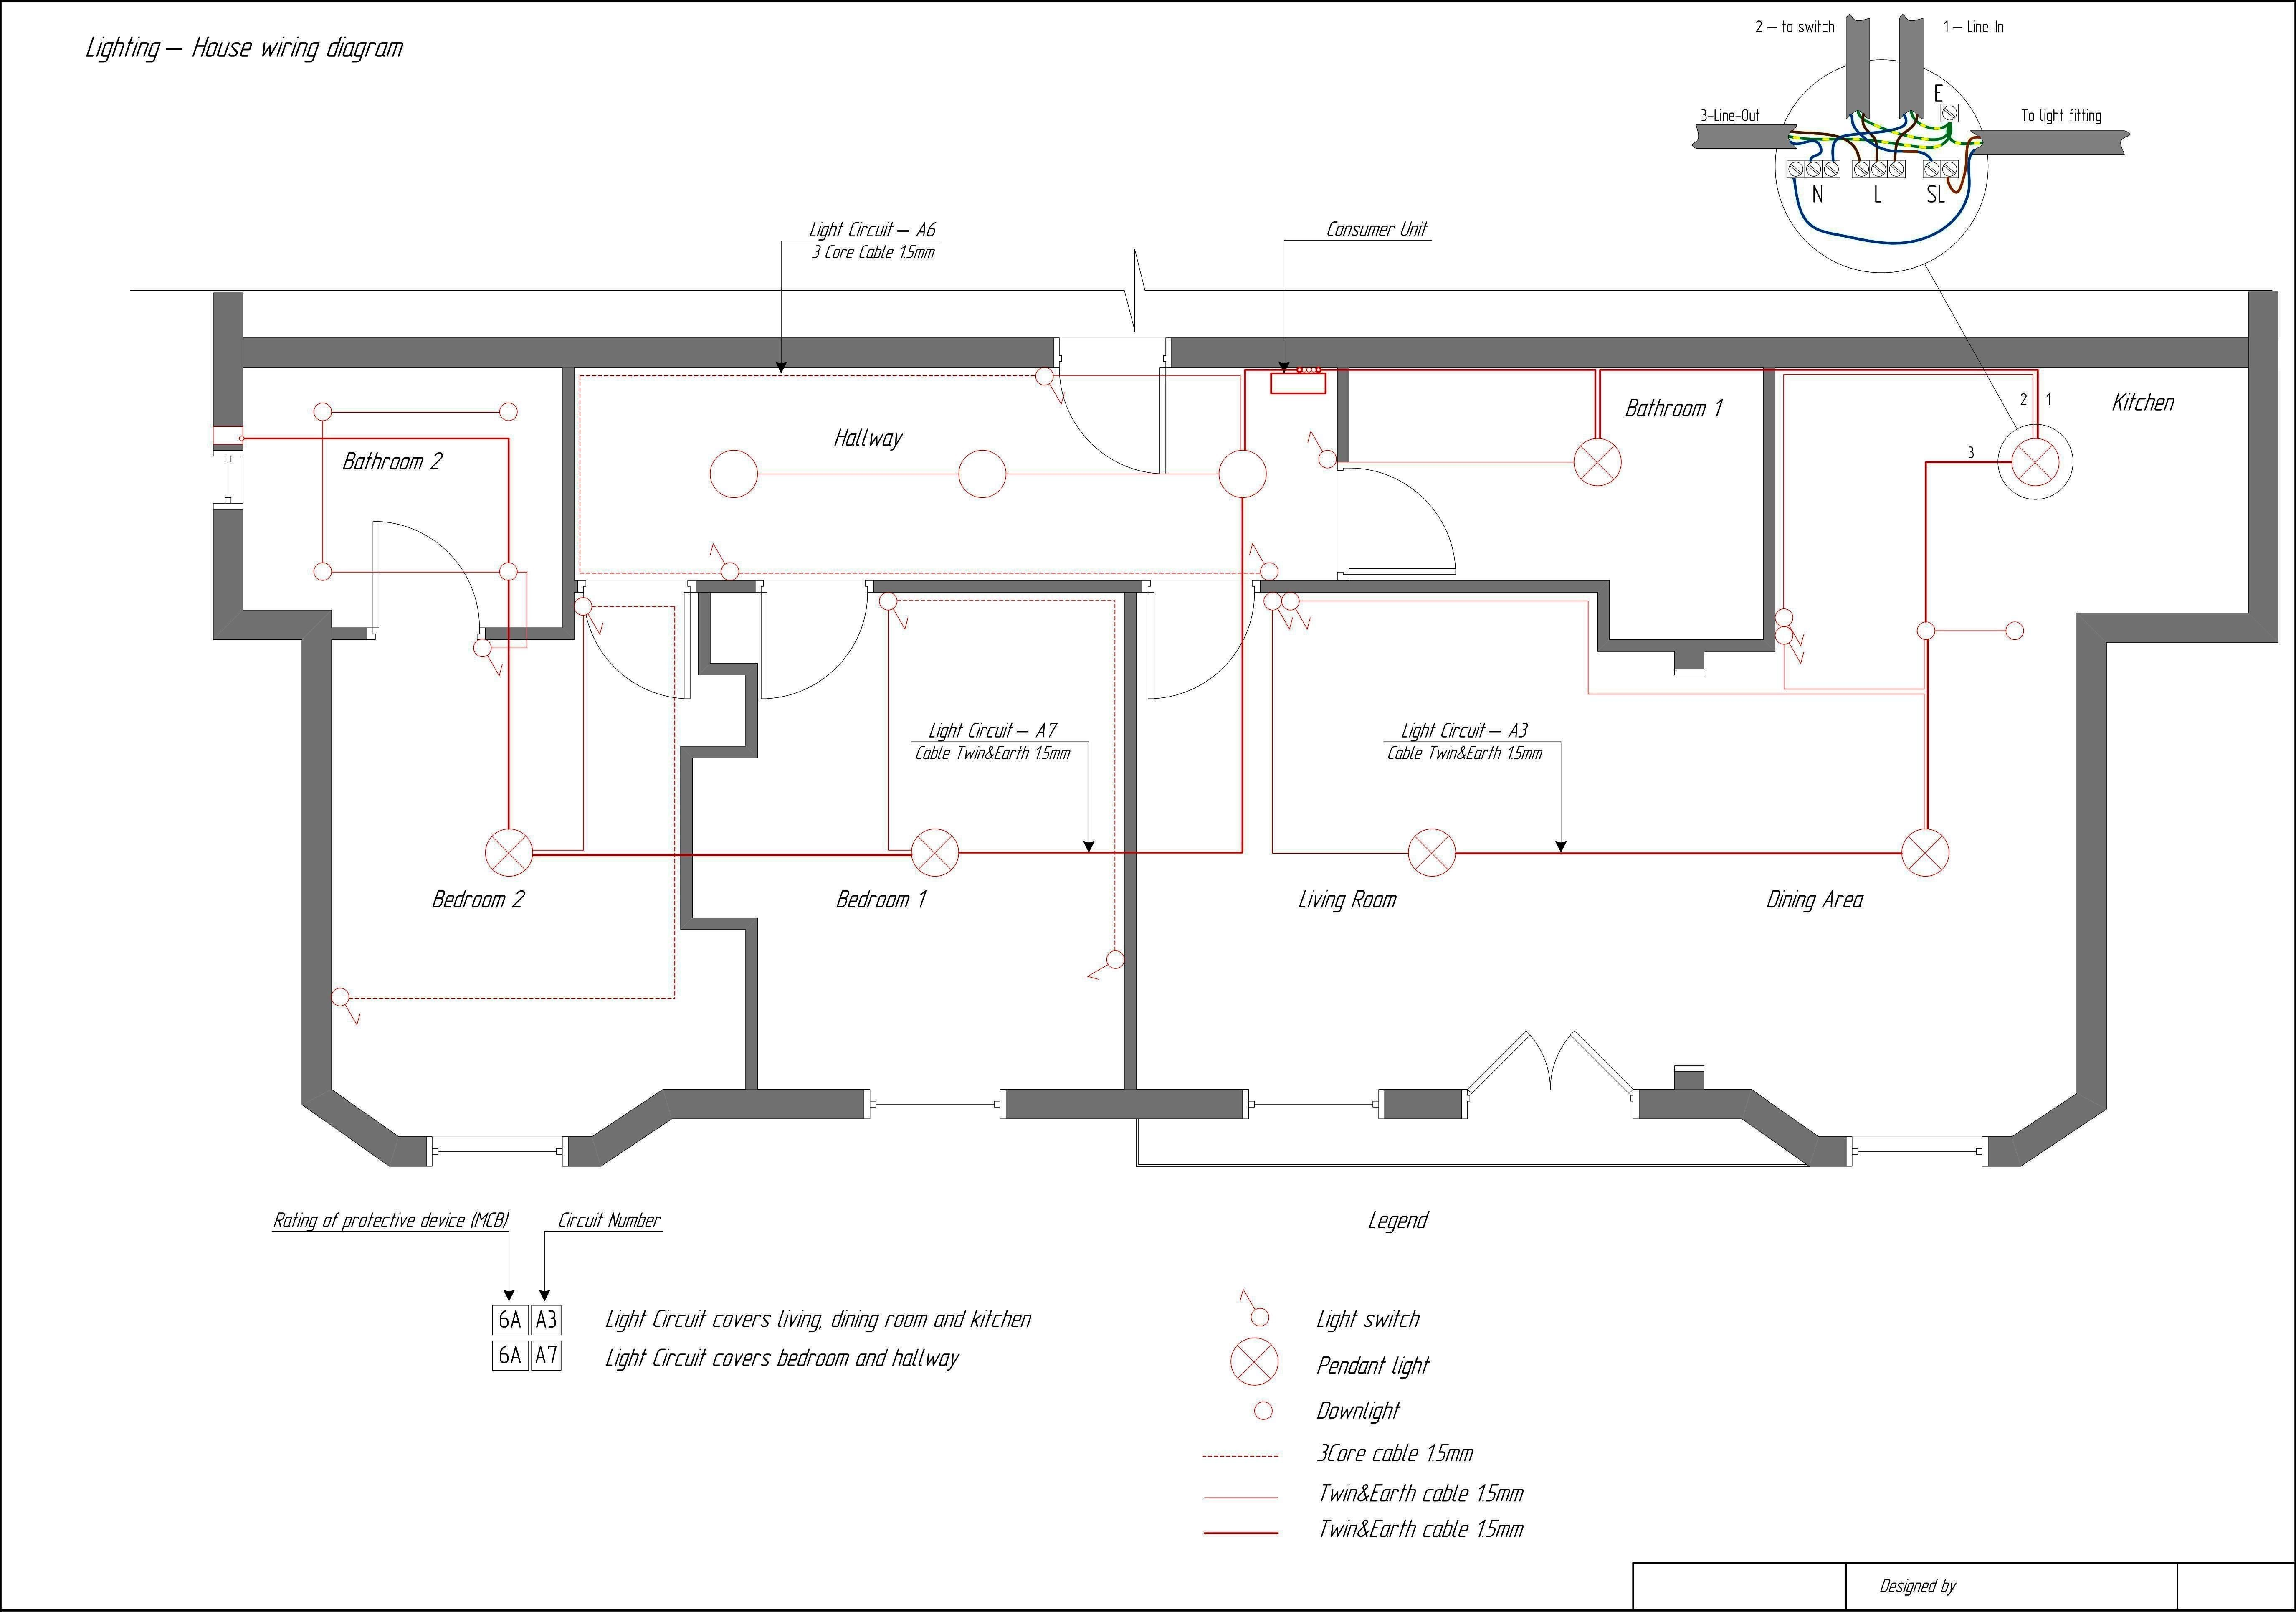 House Wiring Diagram House Wiring Diagrams Database Electrical